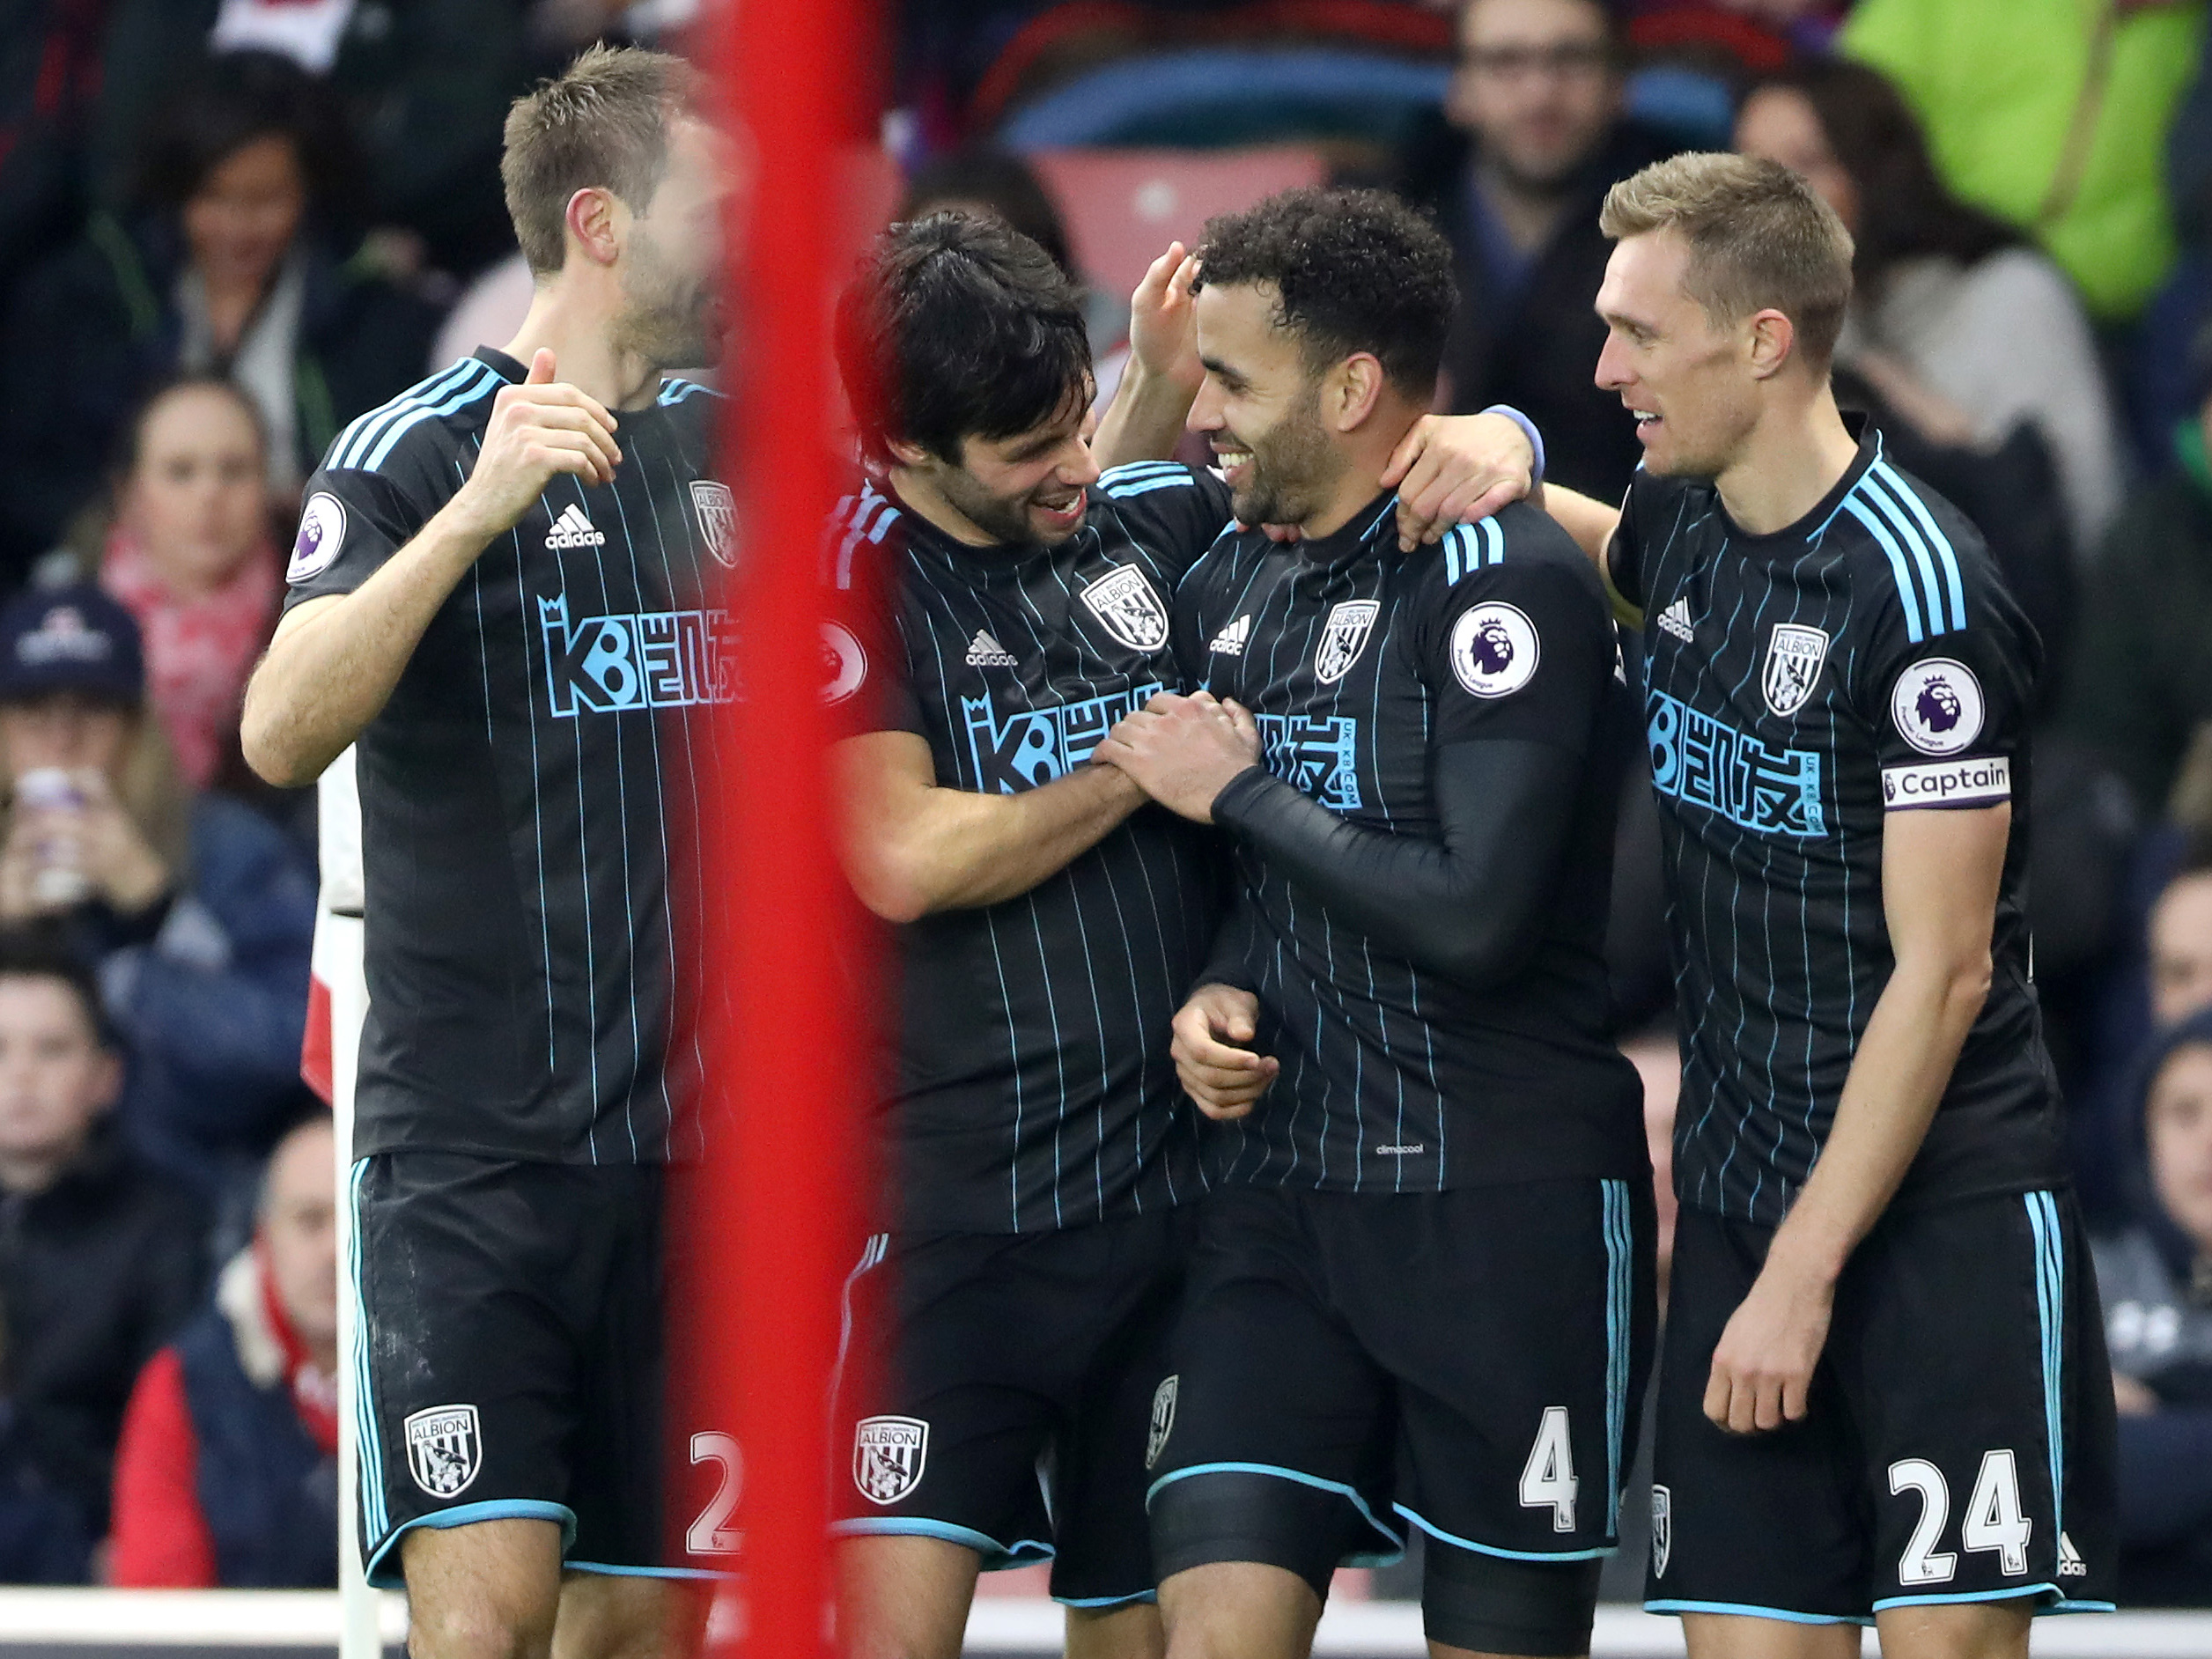 Watch every Albion goal at St. Mary's Stadium